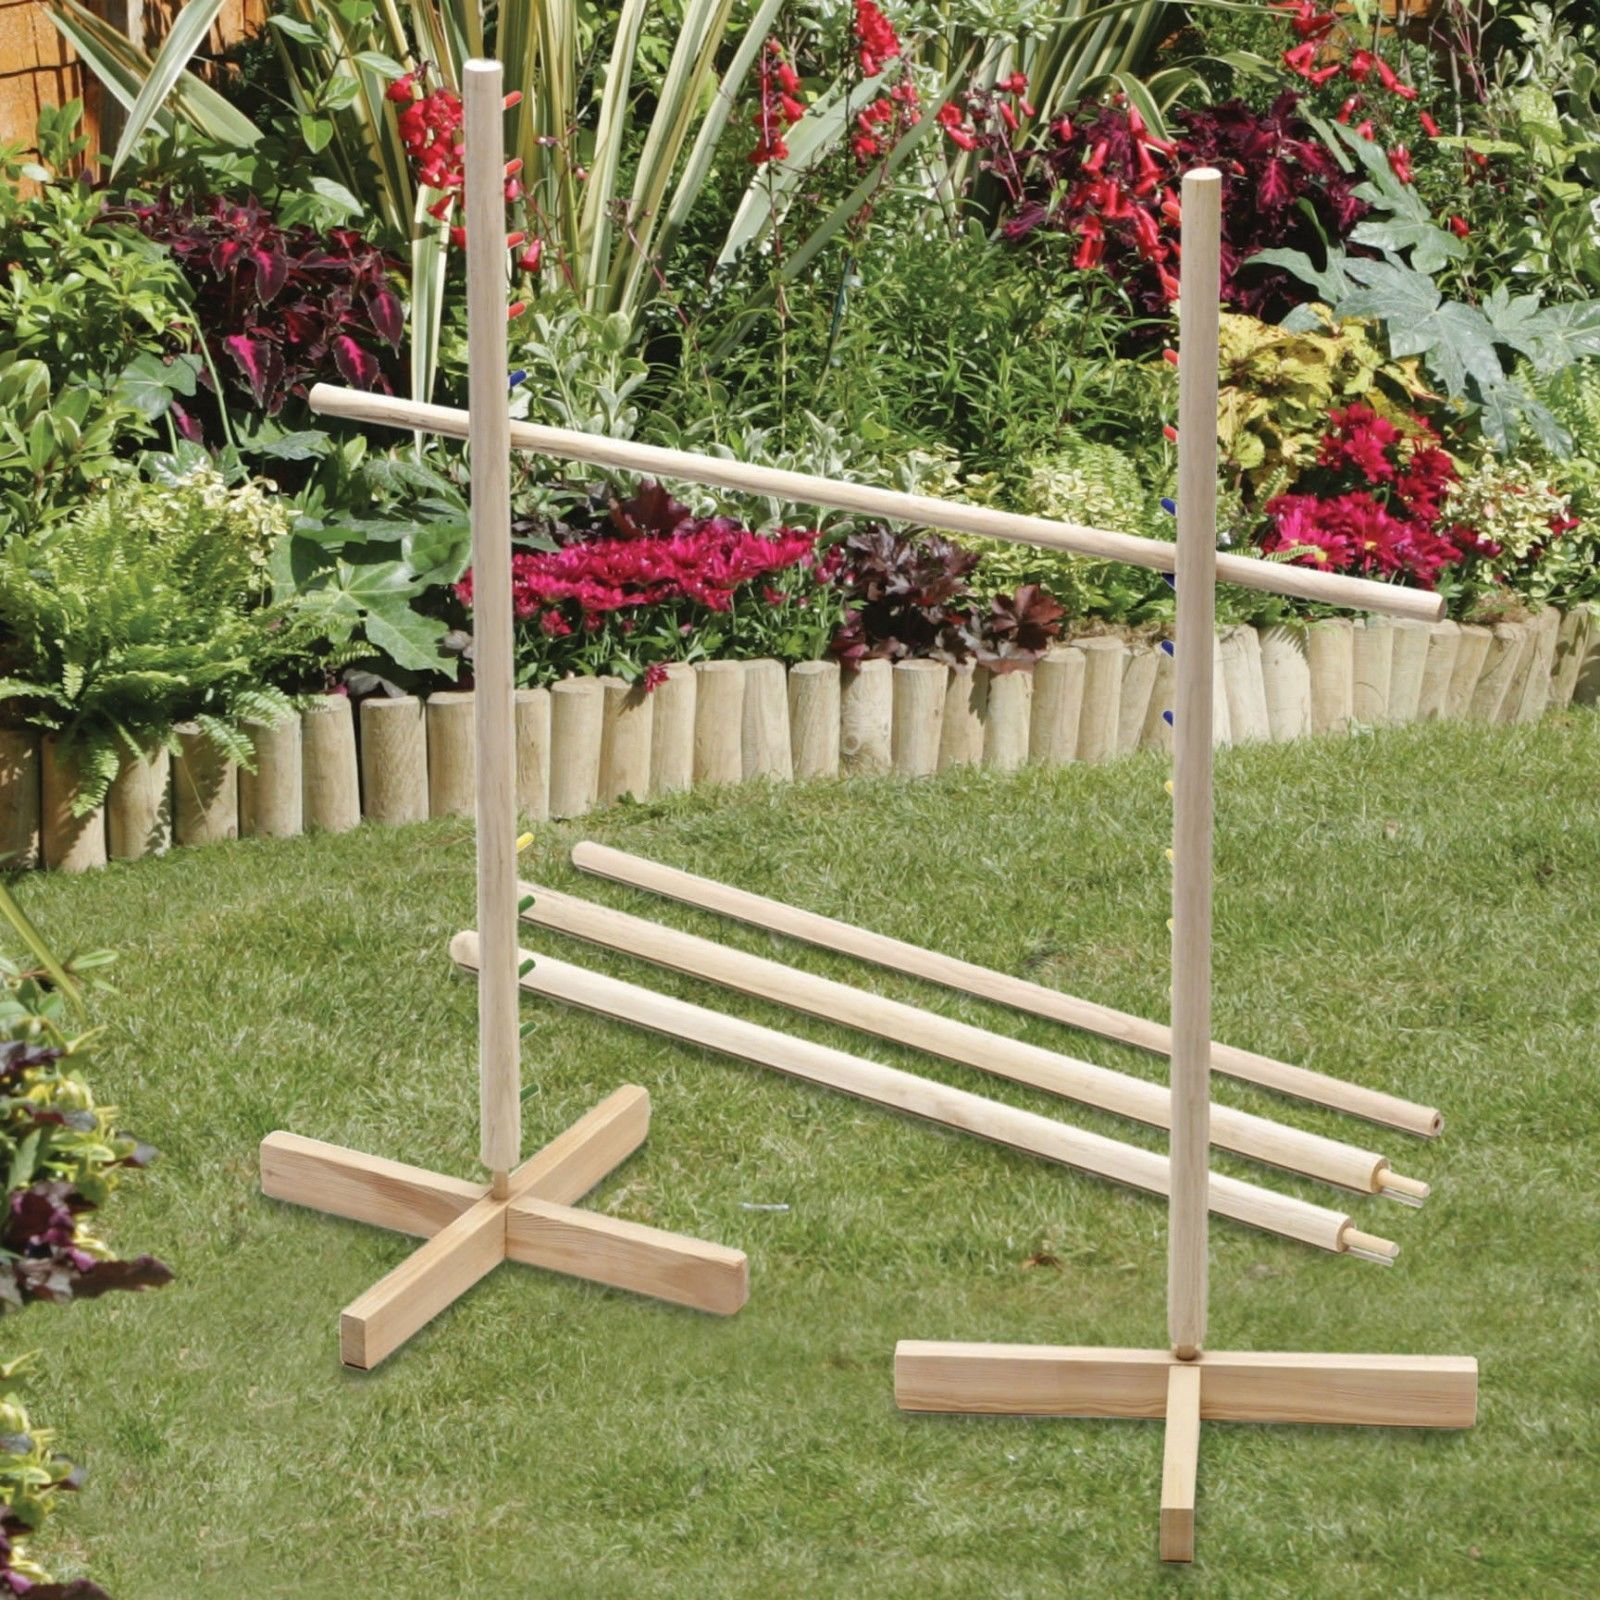 Wooden Limbo Game Giant Garden Games Outdoor Summer Beach Play